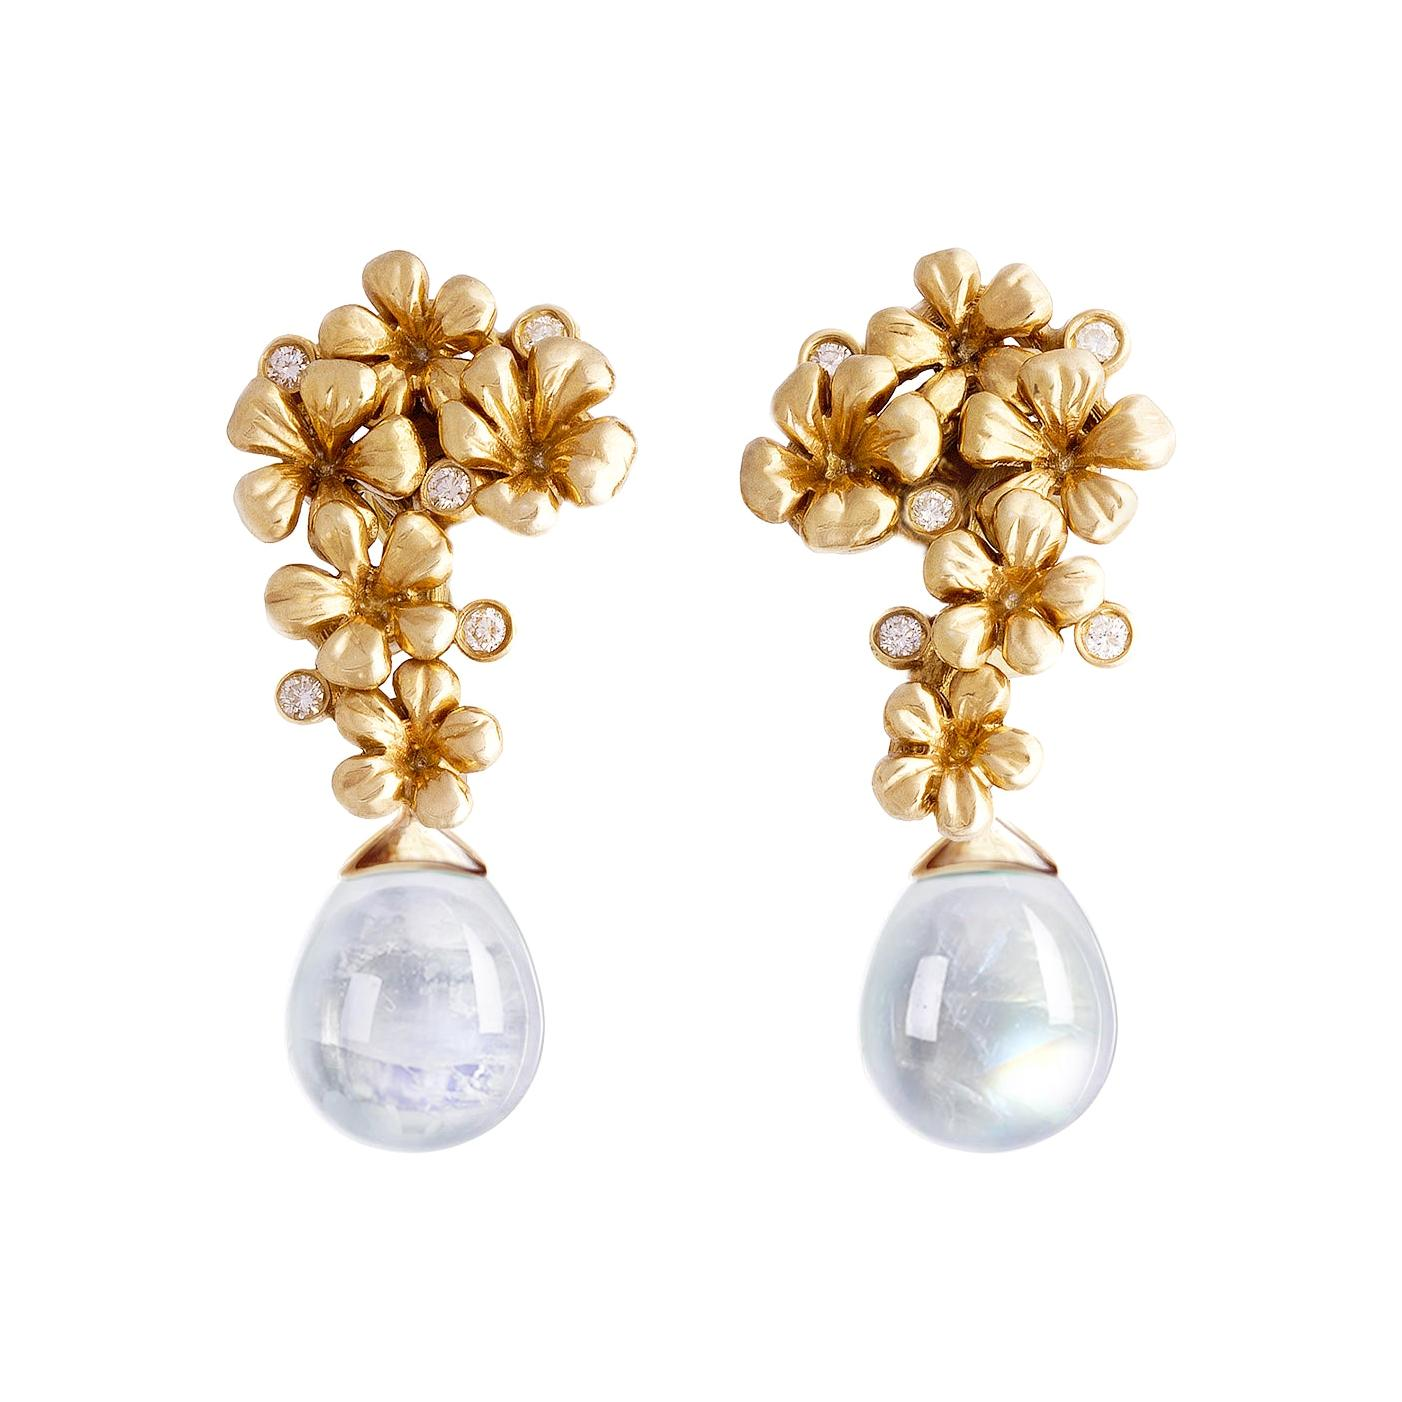 18 Karat Yellow Gold Contemporary Clip-On Earrings with Diamonds and Quartzes